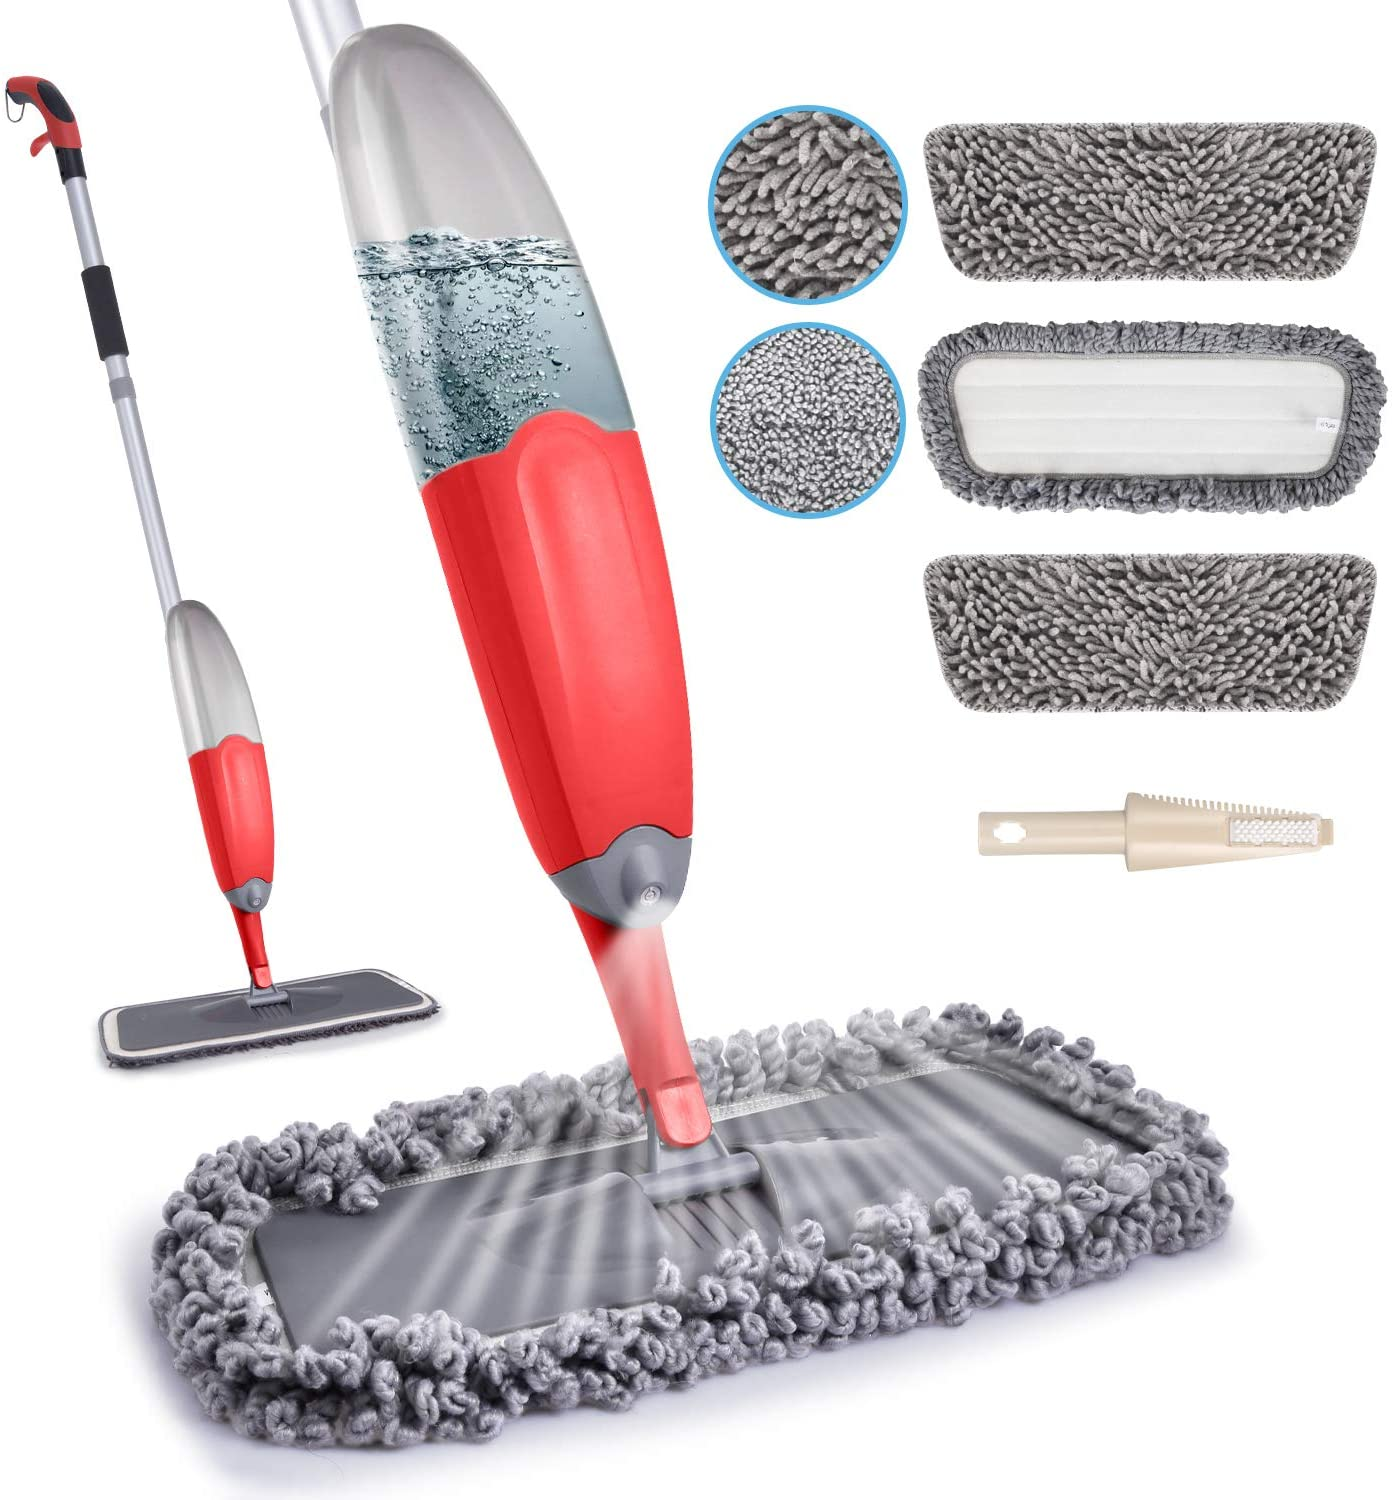 HOMTOYOU Microfiber Spray 2021 model Mop for Dry Selling Wet Cleaning Hardwo Floor